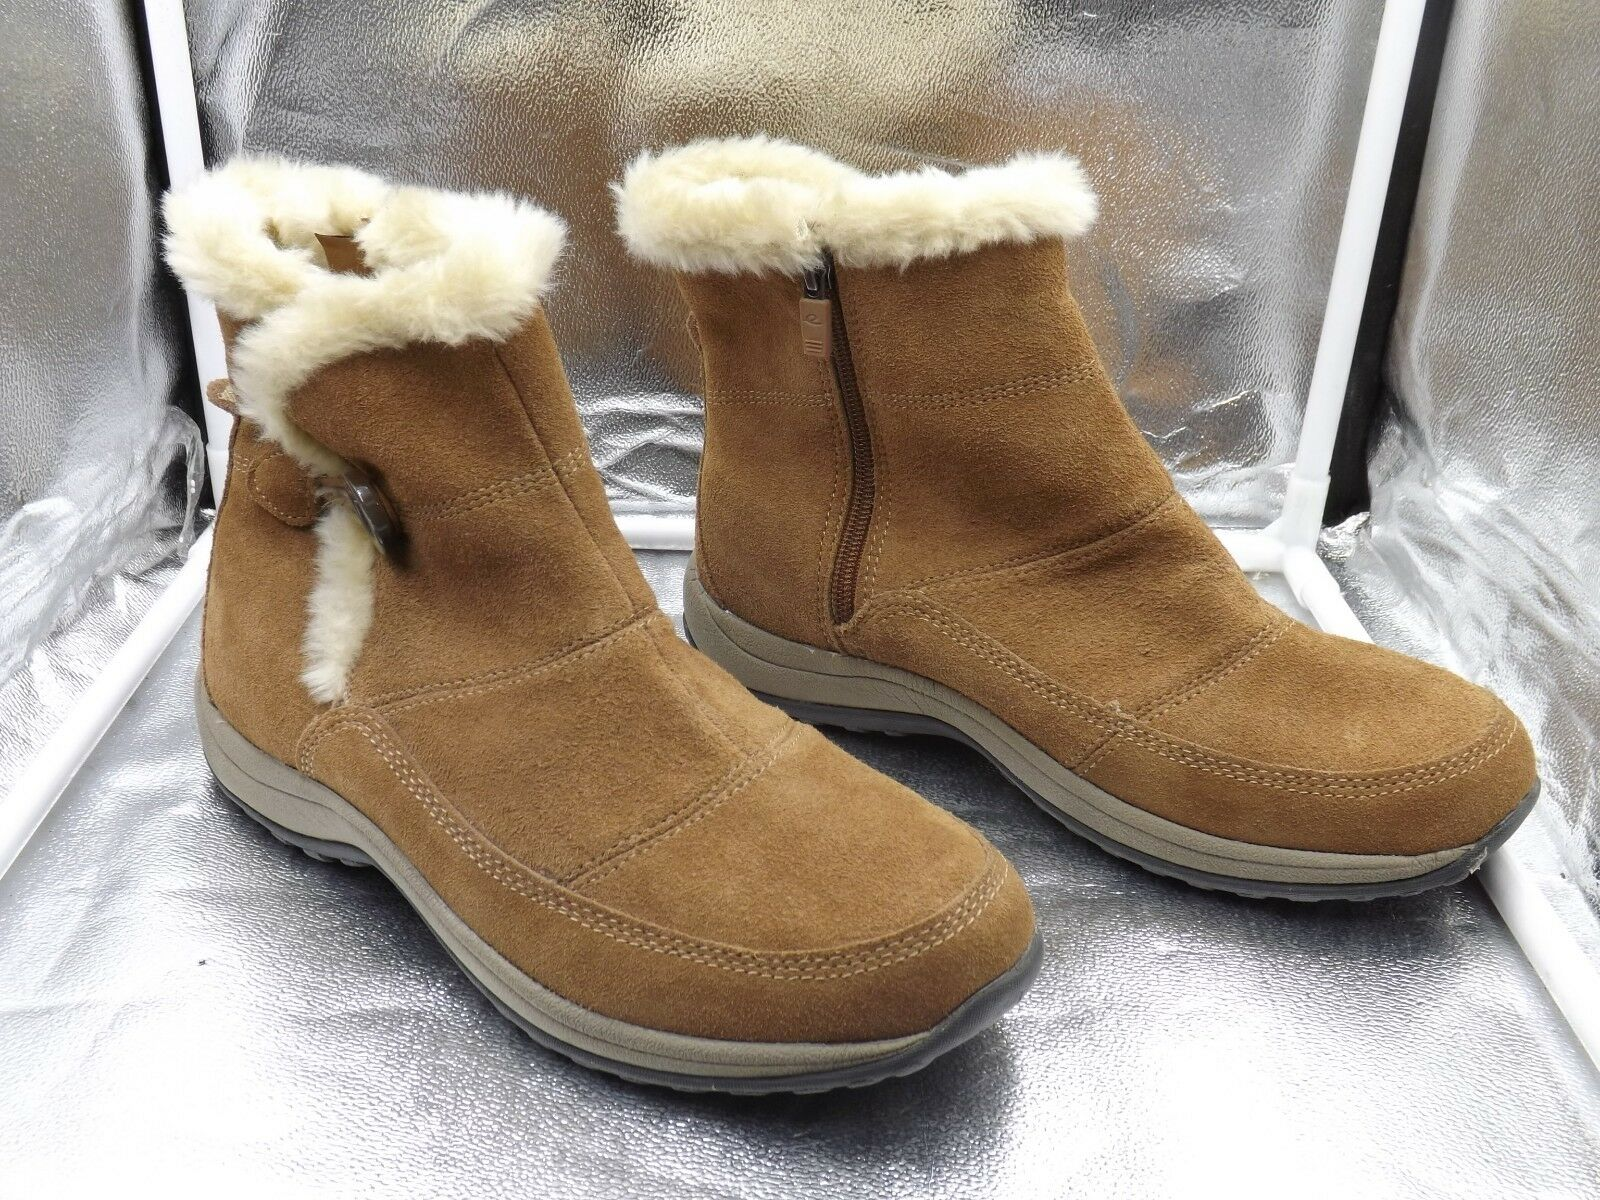 SUEDE LEATHER AND FAUX FUR EASY SPIRIT   ESSTORIES  WOMEN`S  BOOTS SZ 9